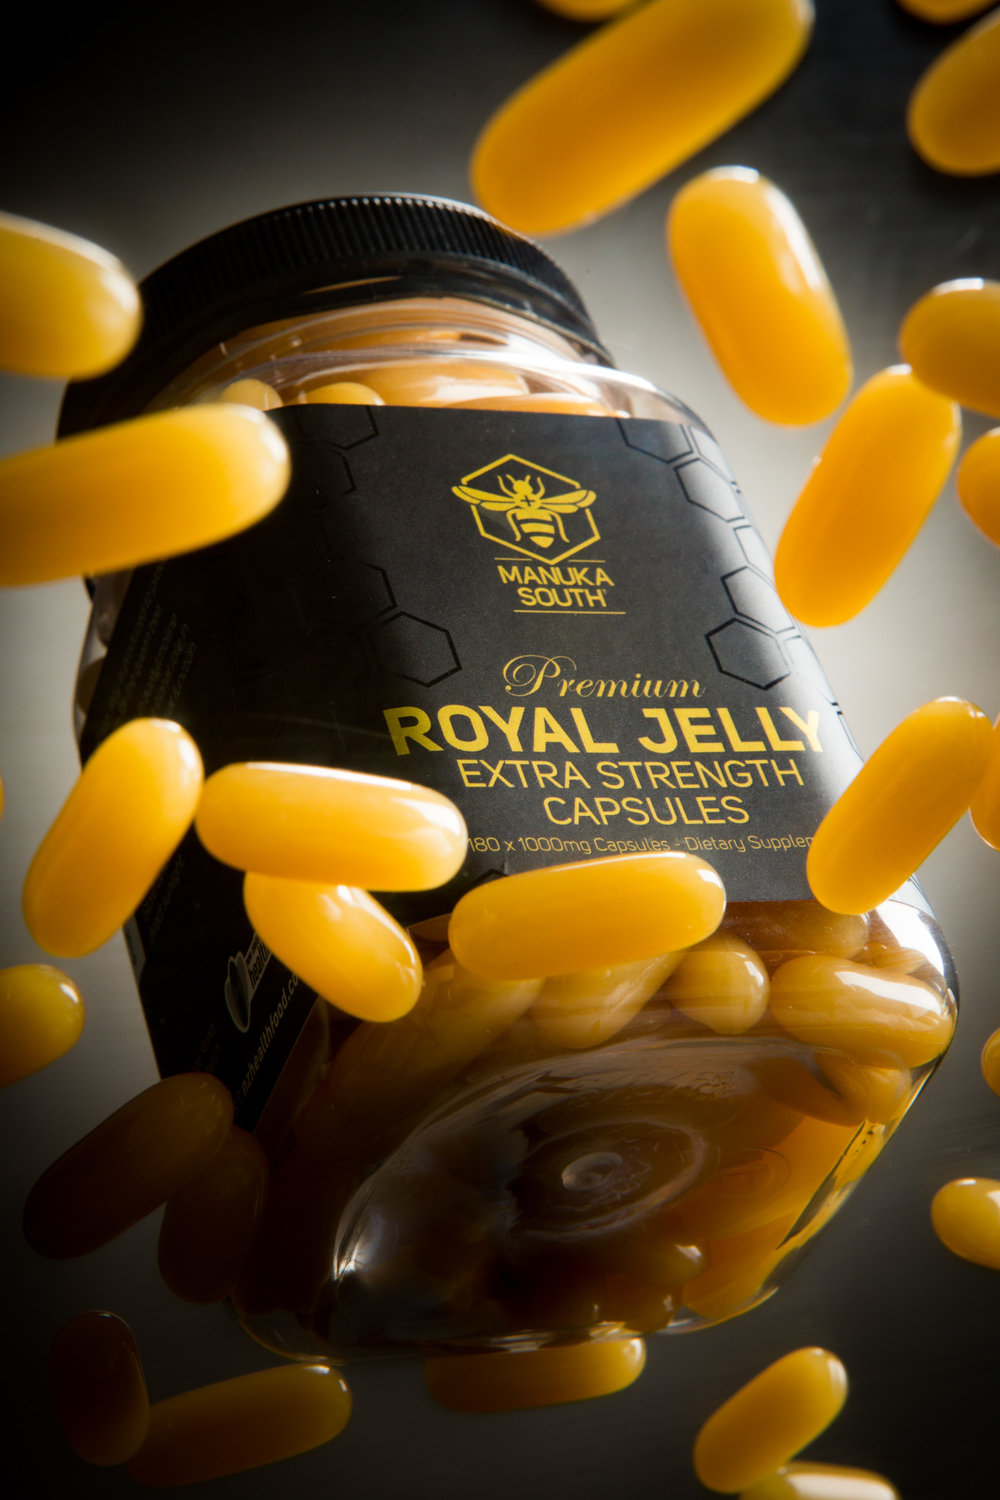 Royal-jelly.jpg